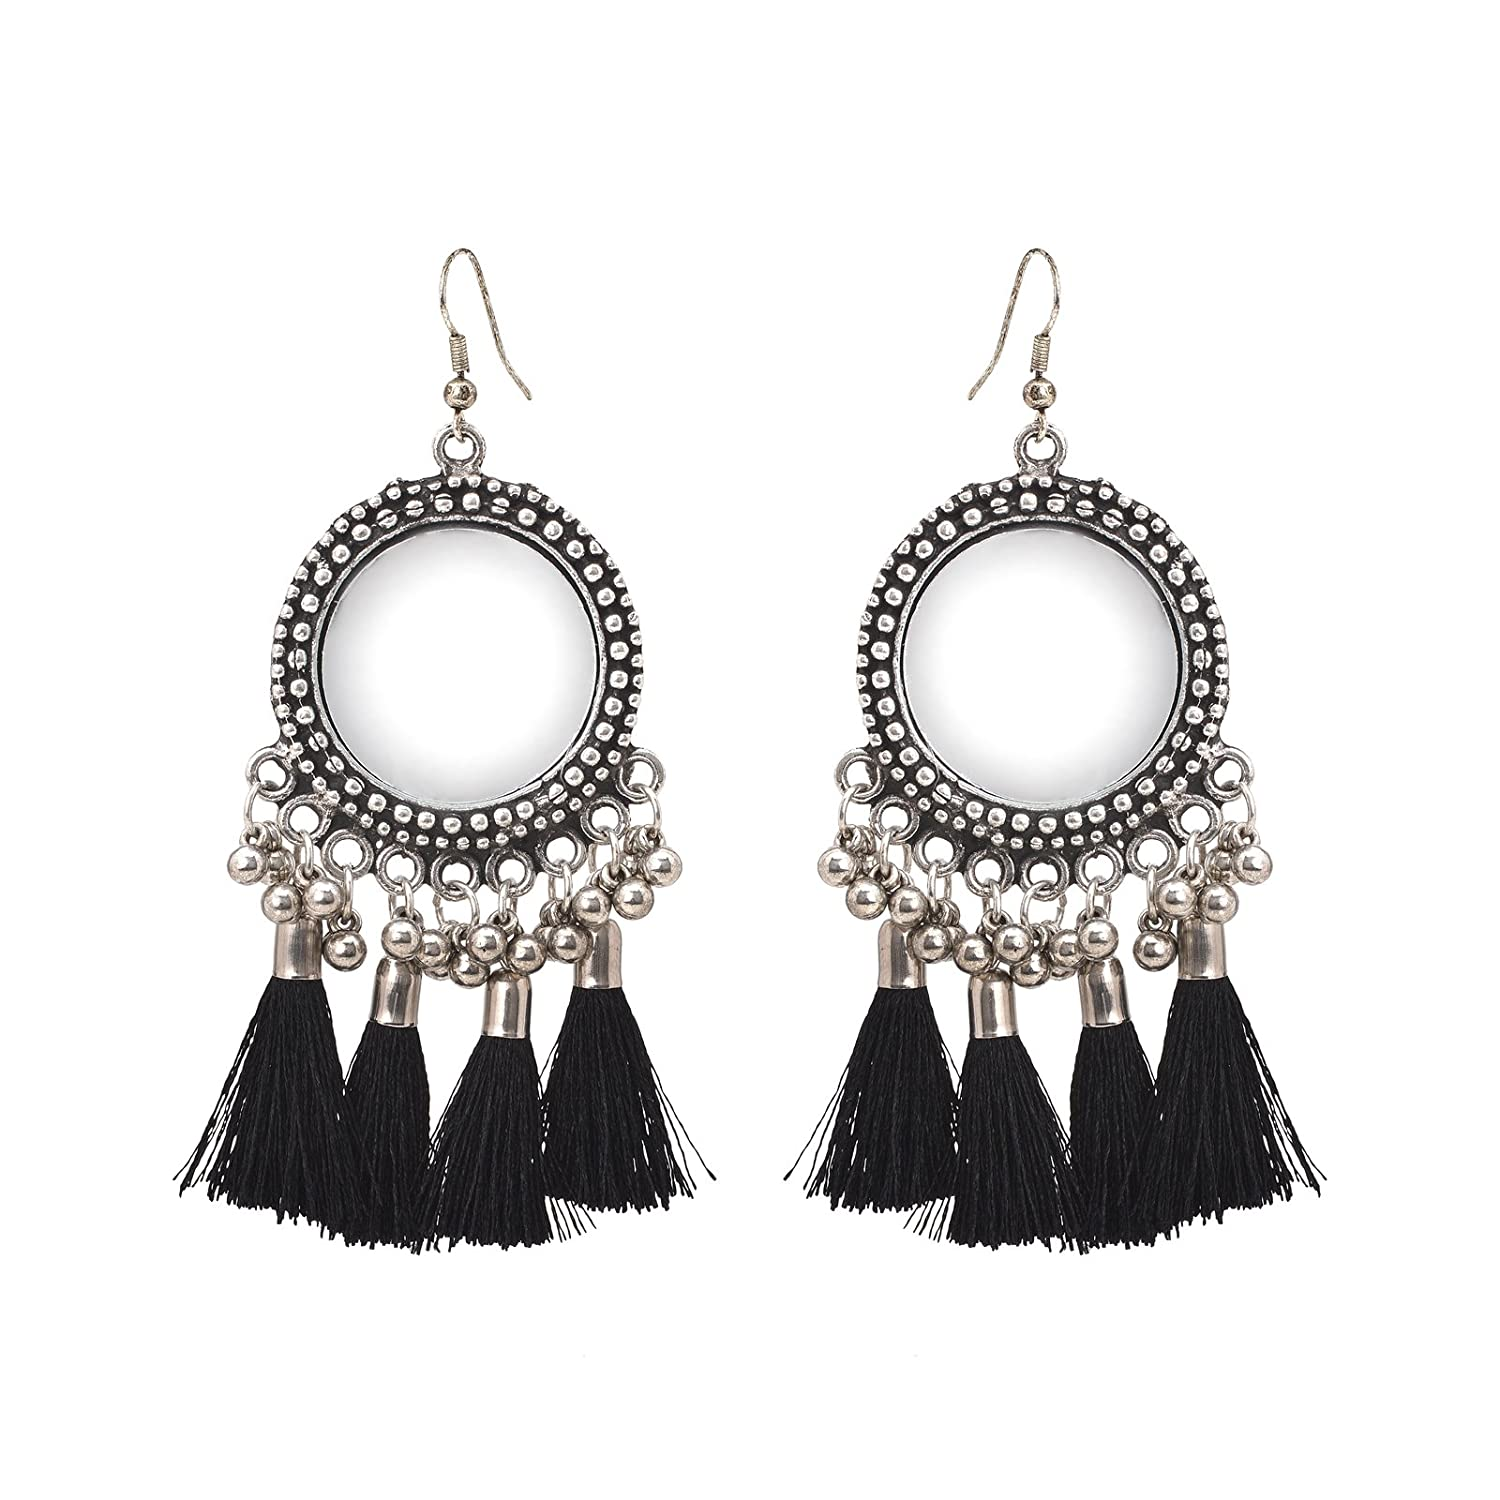 Color Lane Combo Tibetan Oxidized Silver Drop//Hook Earrings Set Of 2 Black Tassels Work CO-1164